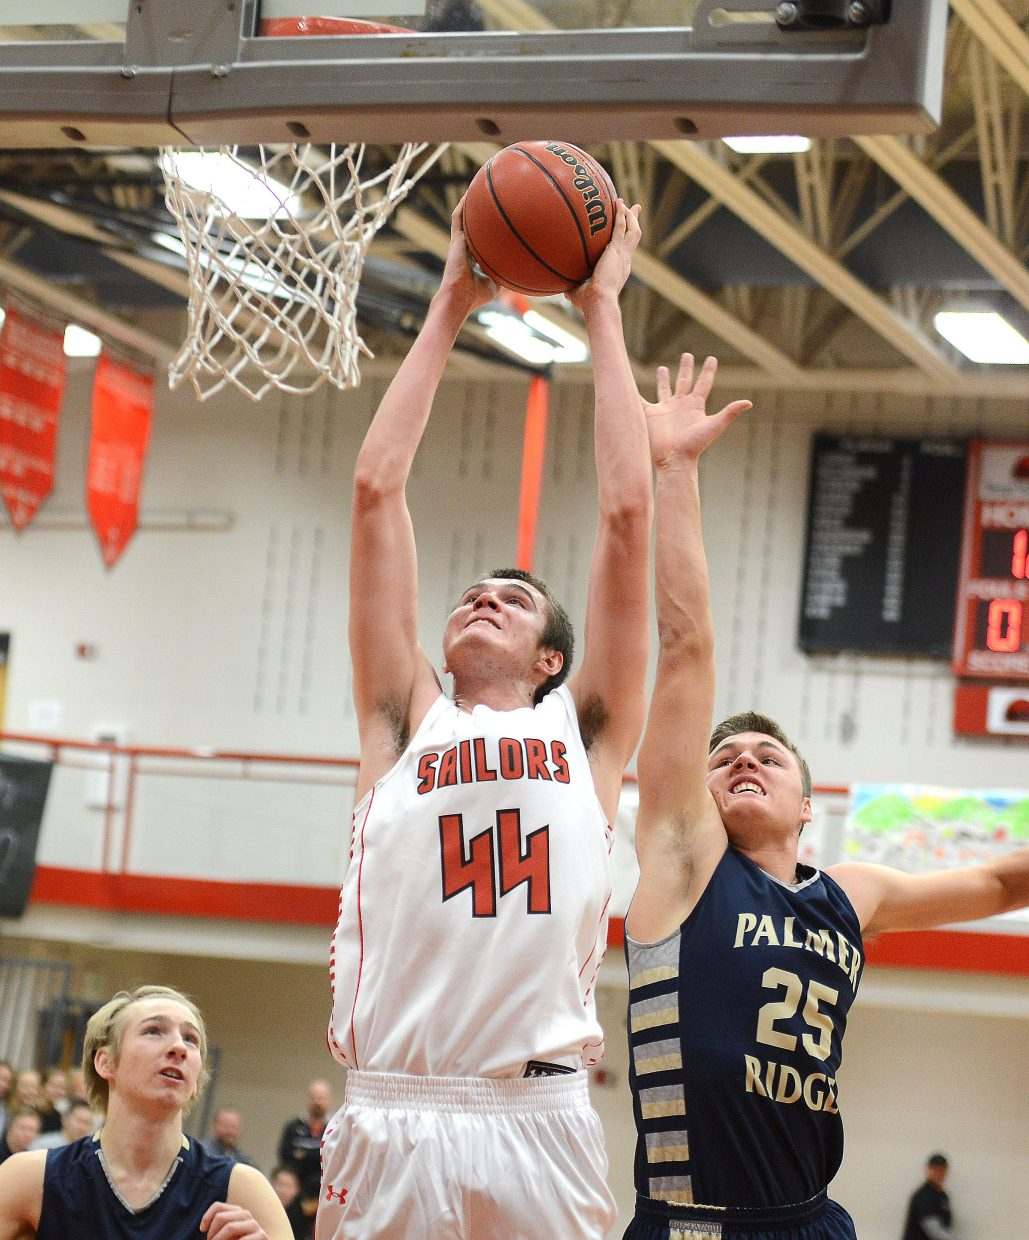 Garrett Bye goes up for a dunk Saturday. Unfortunately for Bye, it was waved off as a foul was called before the shot.